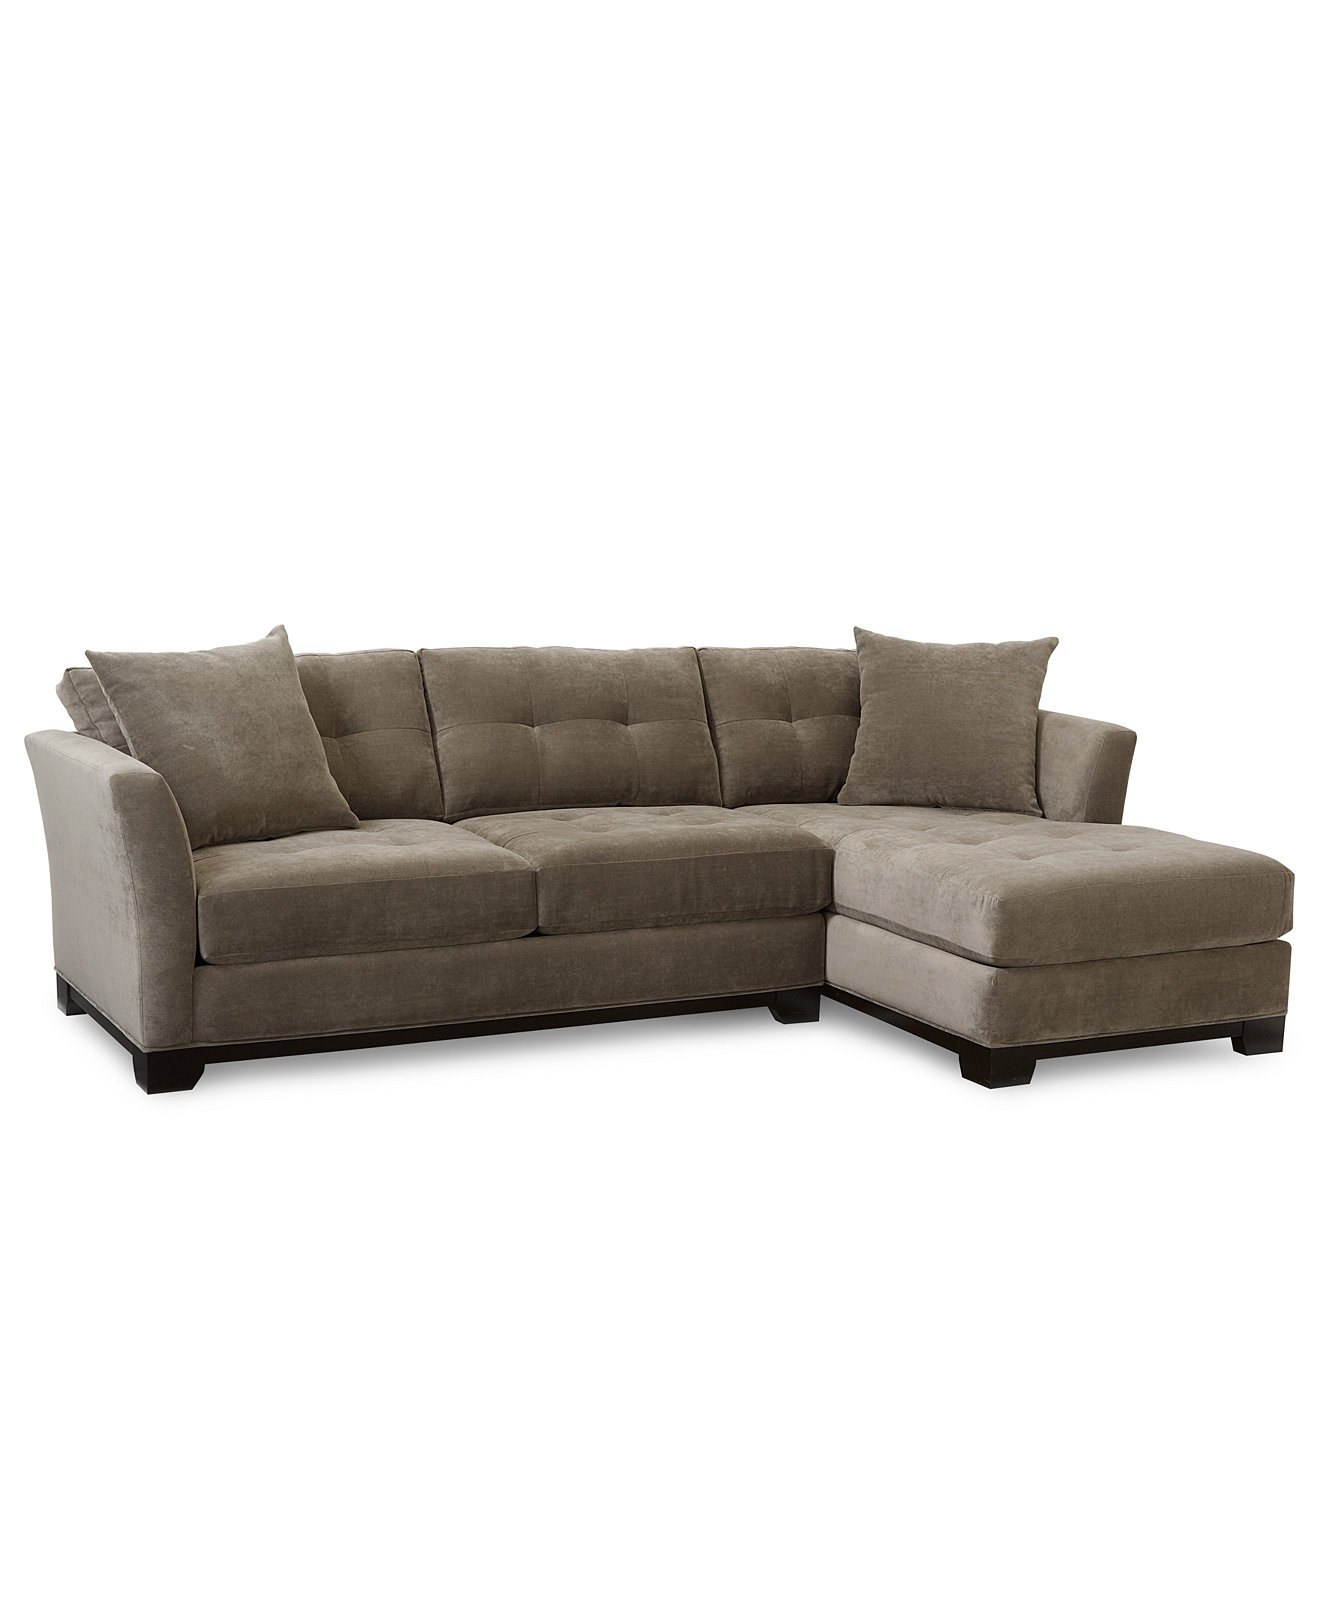 Elliot Fabric Microfiber 2 Pc Chaise Sectional Sofa Sectional Inside Elliott Sofa (#8 of 12)